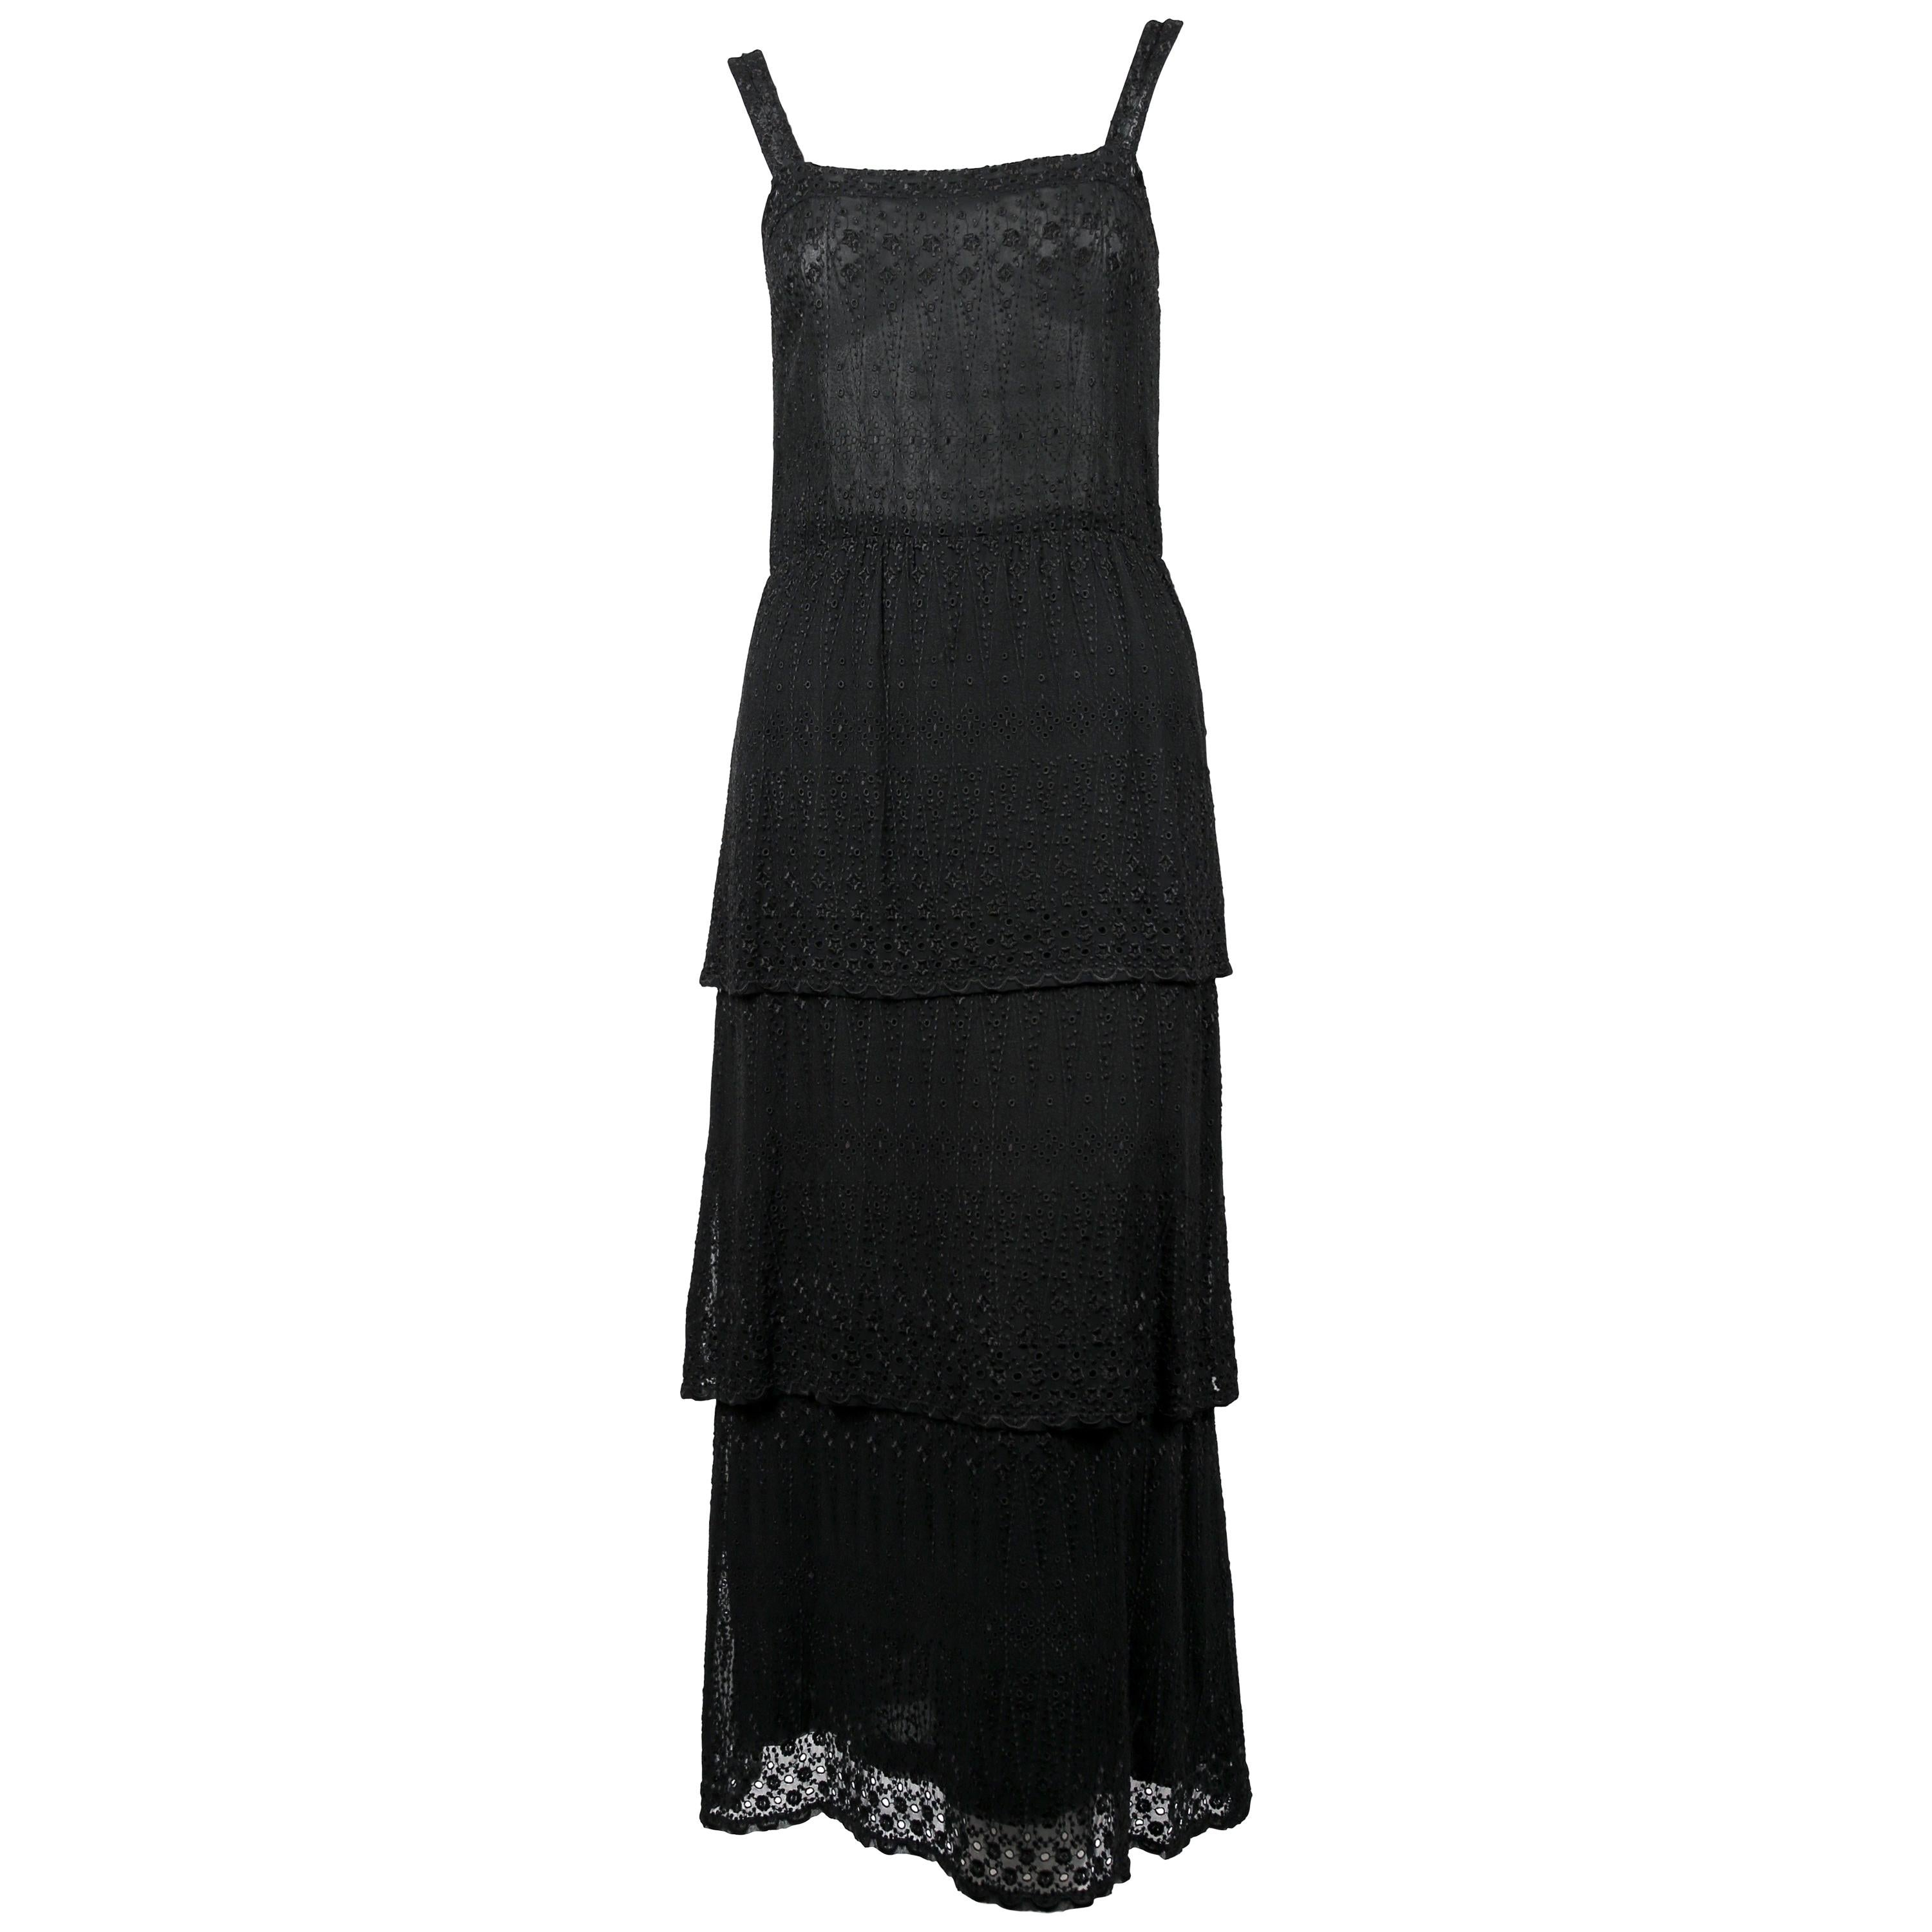 1970's TED LAPIDUS couture eyelet dress with tiered hem